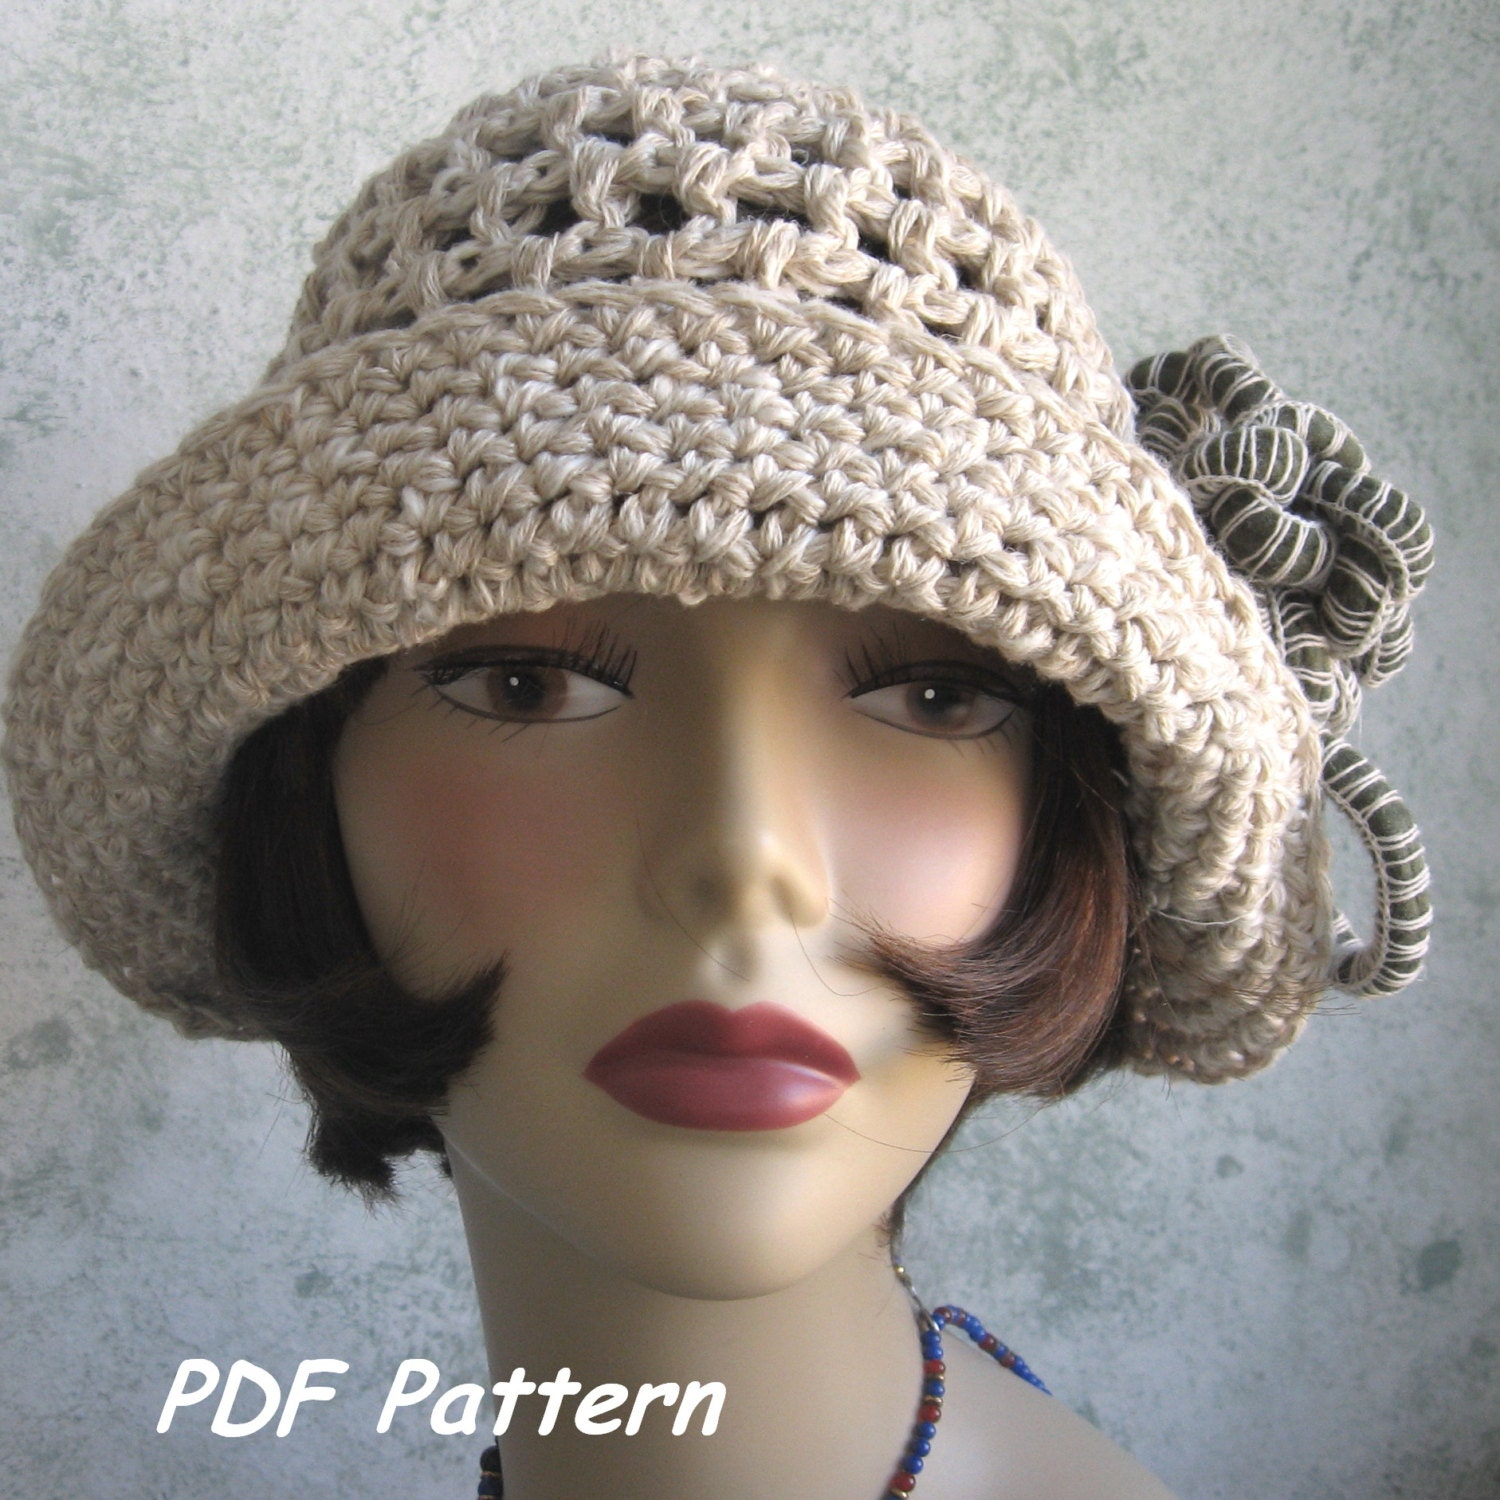 Free Crochet Hat Patterns To Download : Brimmed Crochet Hat Pattern Cloche With Flower Trim PDF